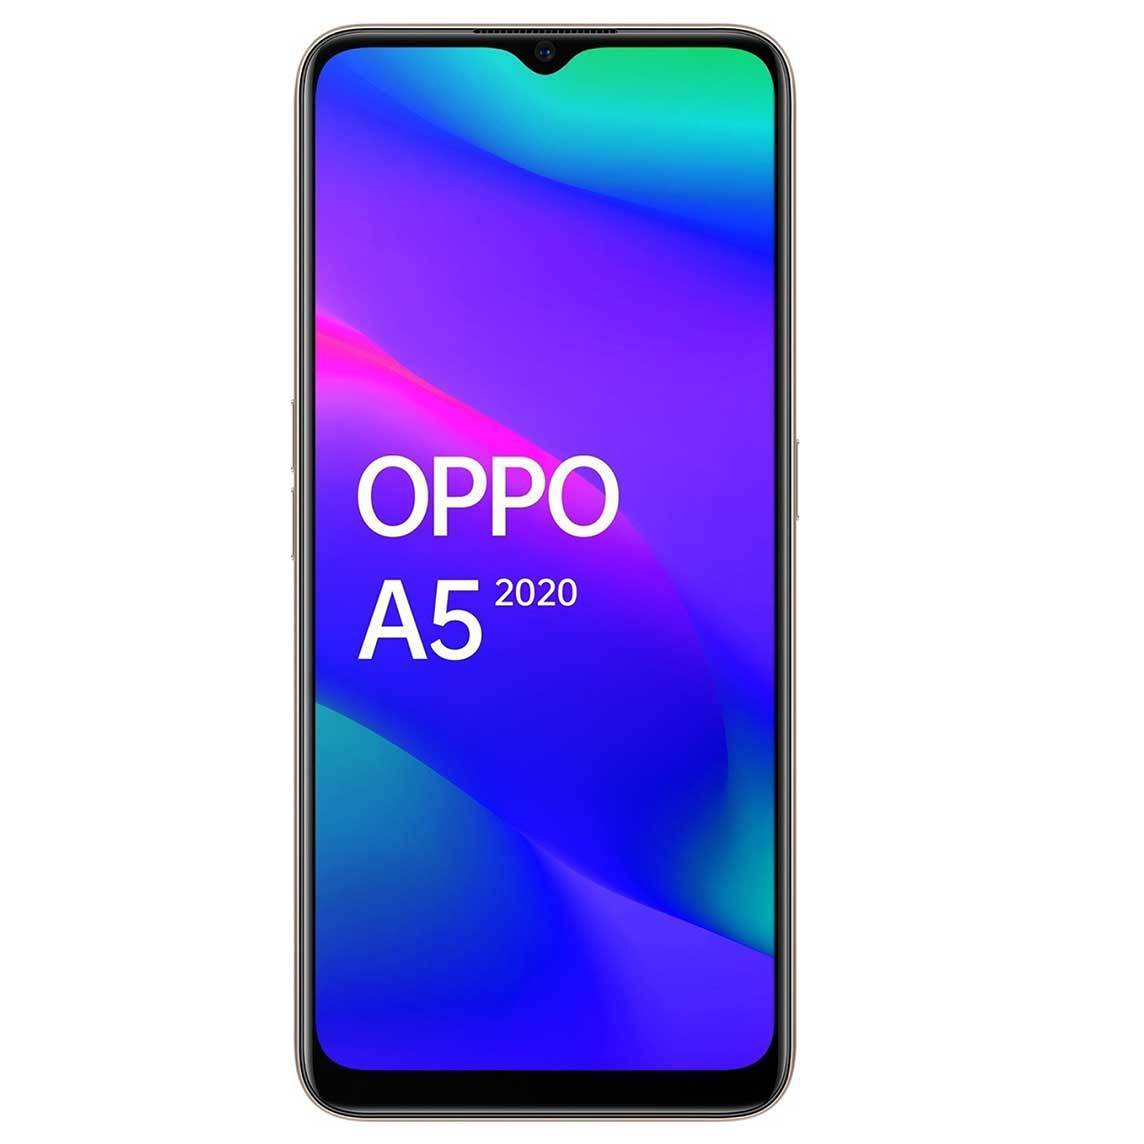 oppo-a5-2020-1